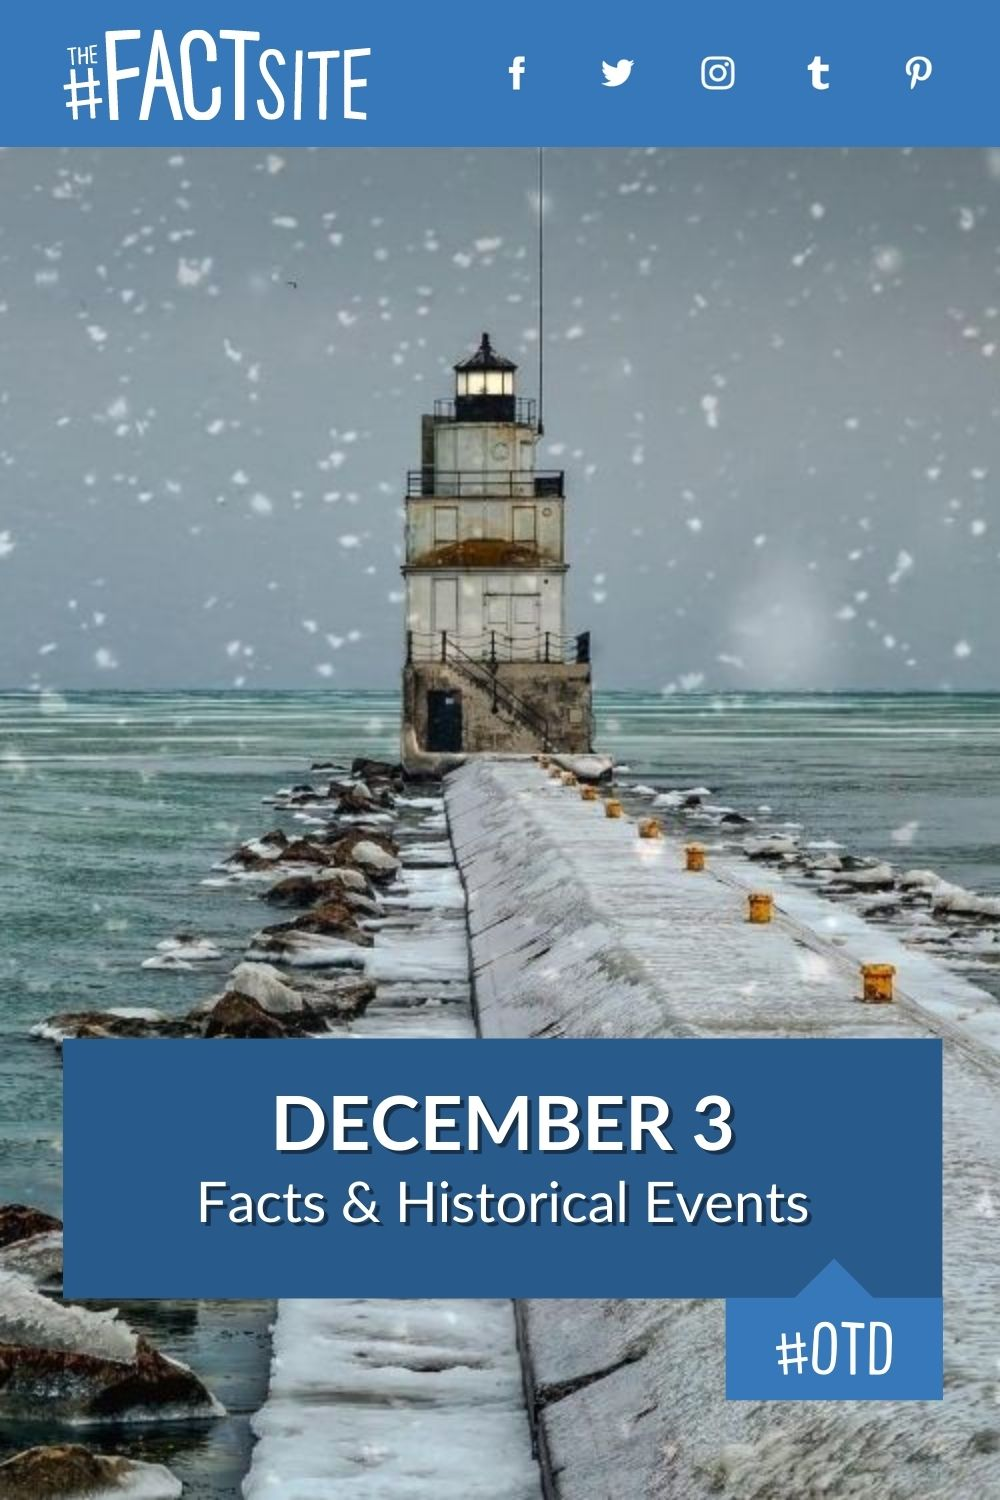 Facts & Historic Events That Happened on December 3